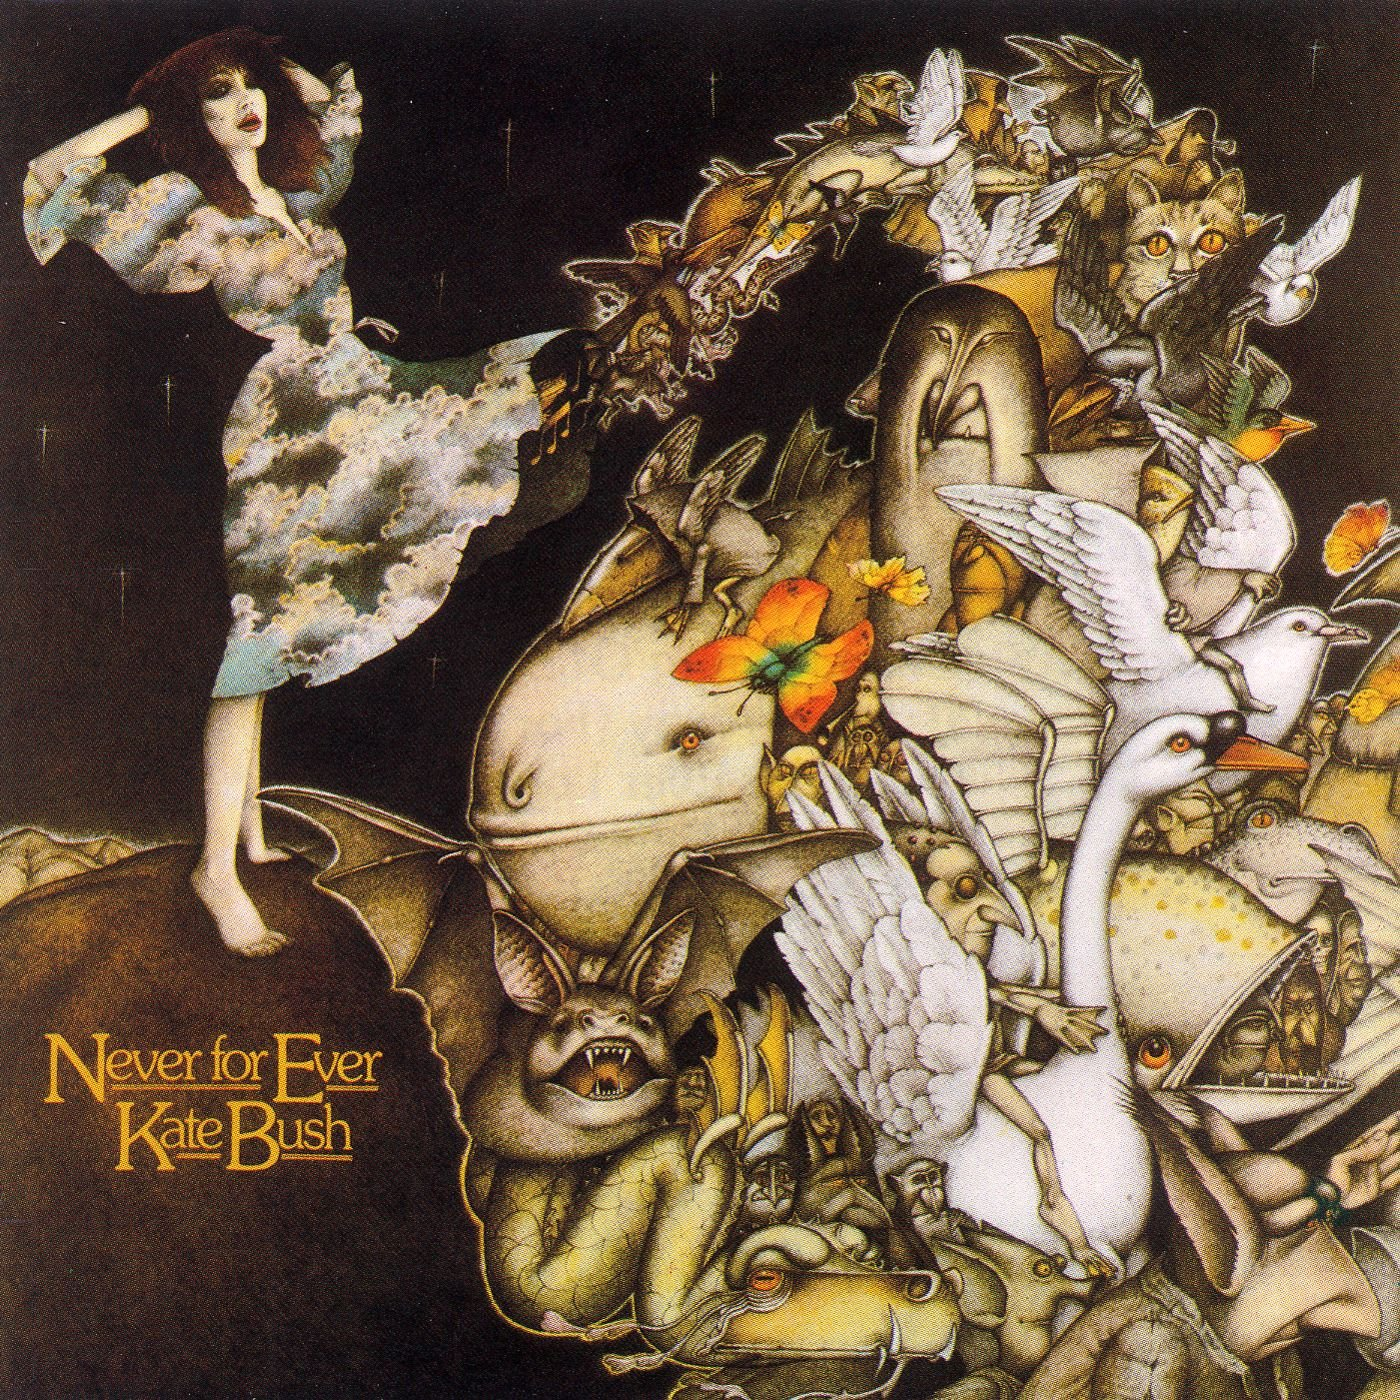 Image result for kate bush never for ever album cover